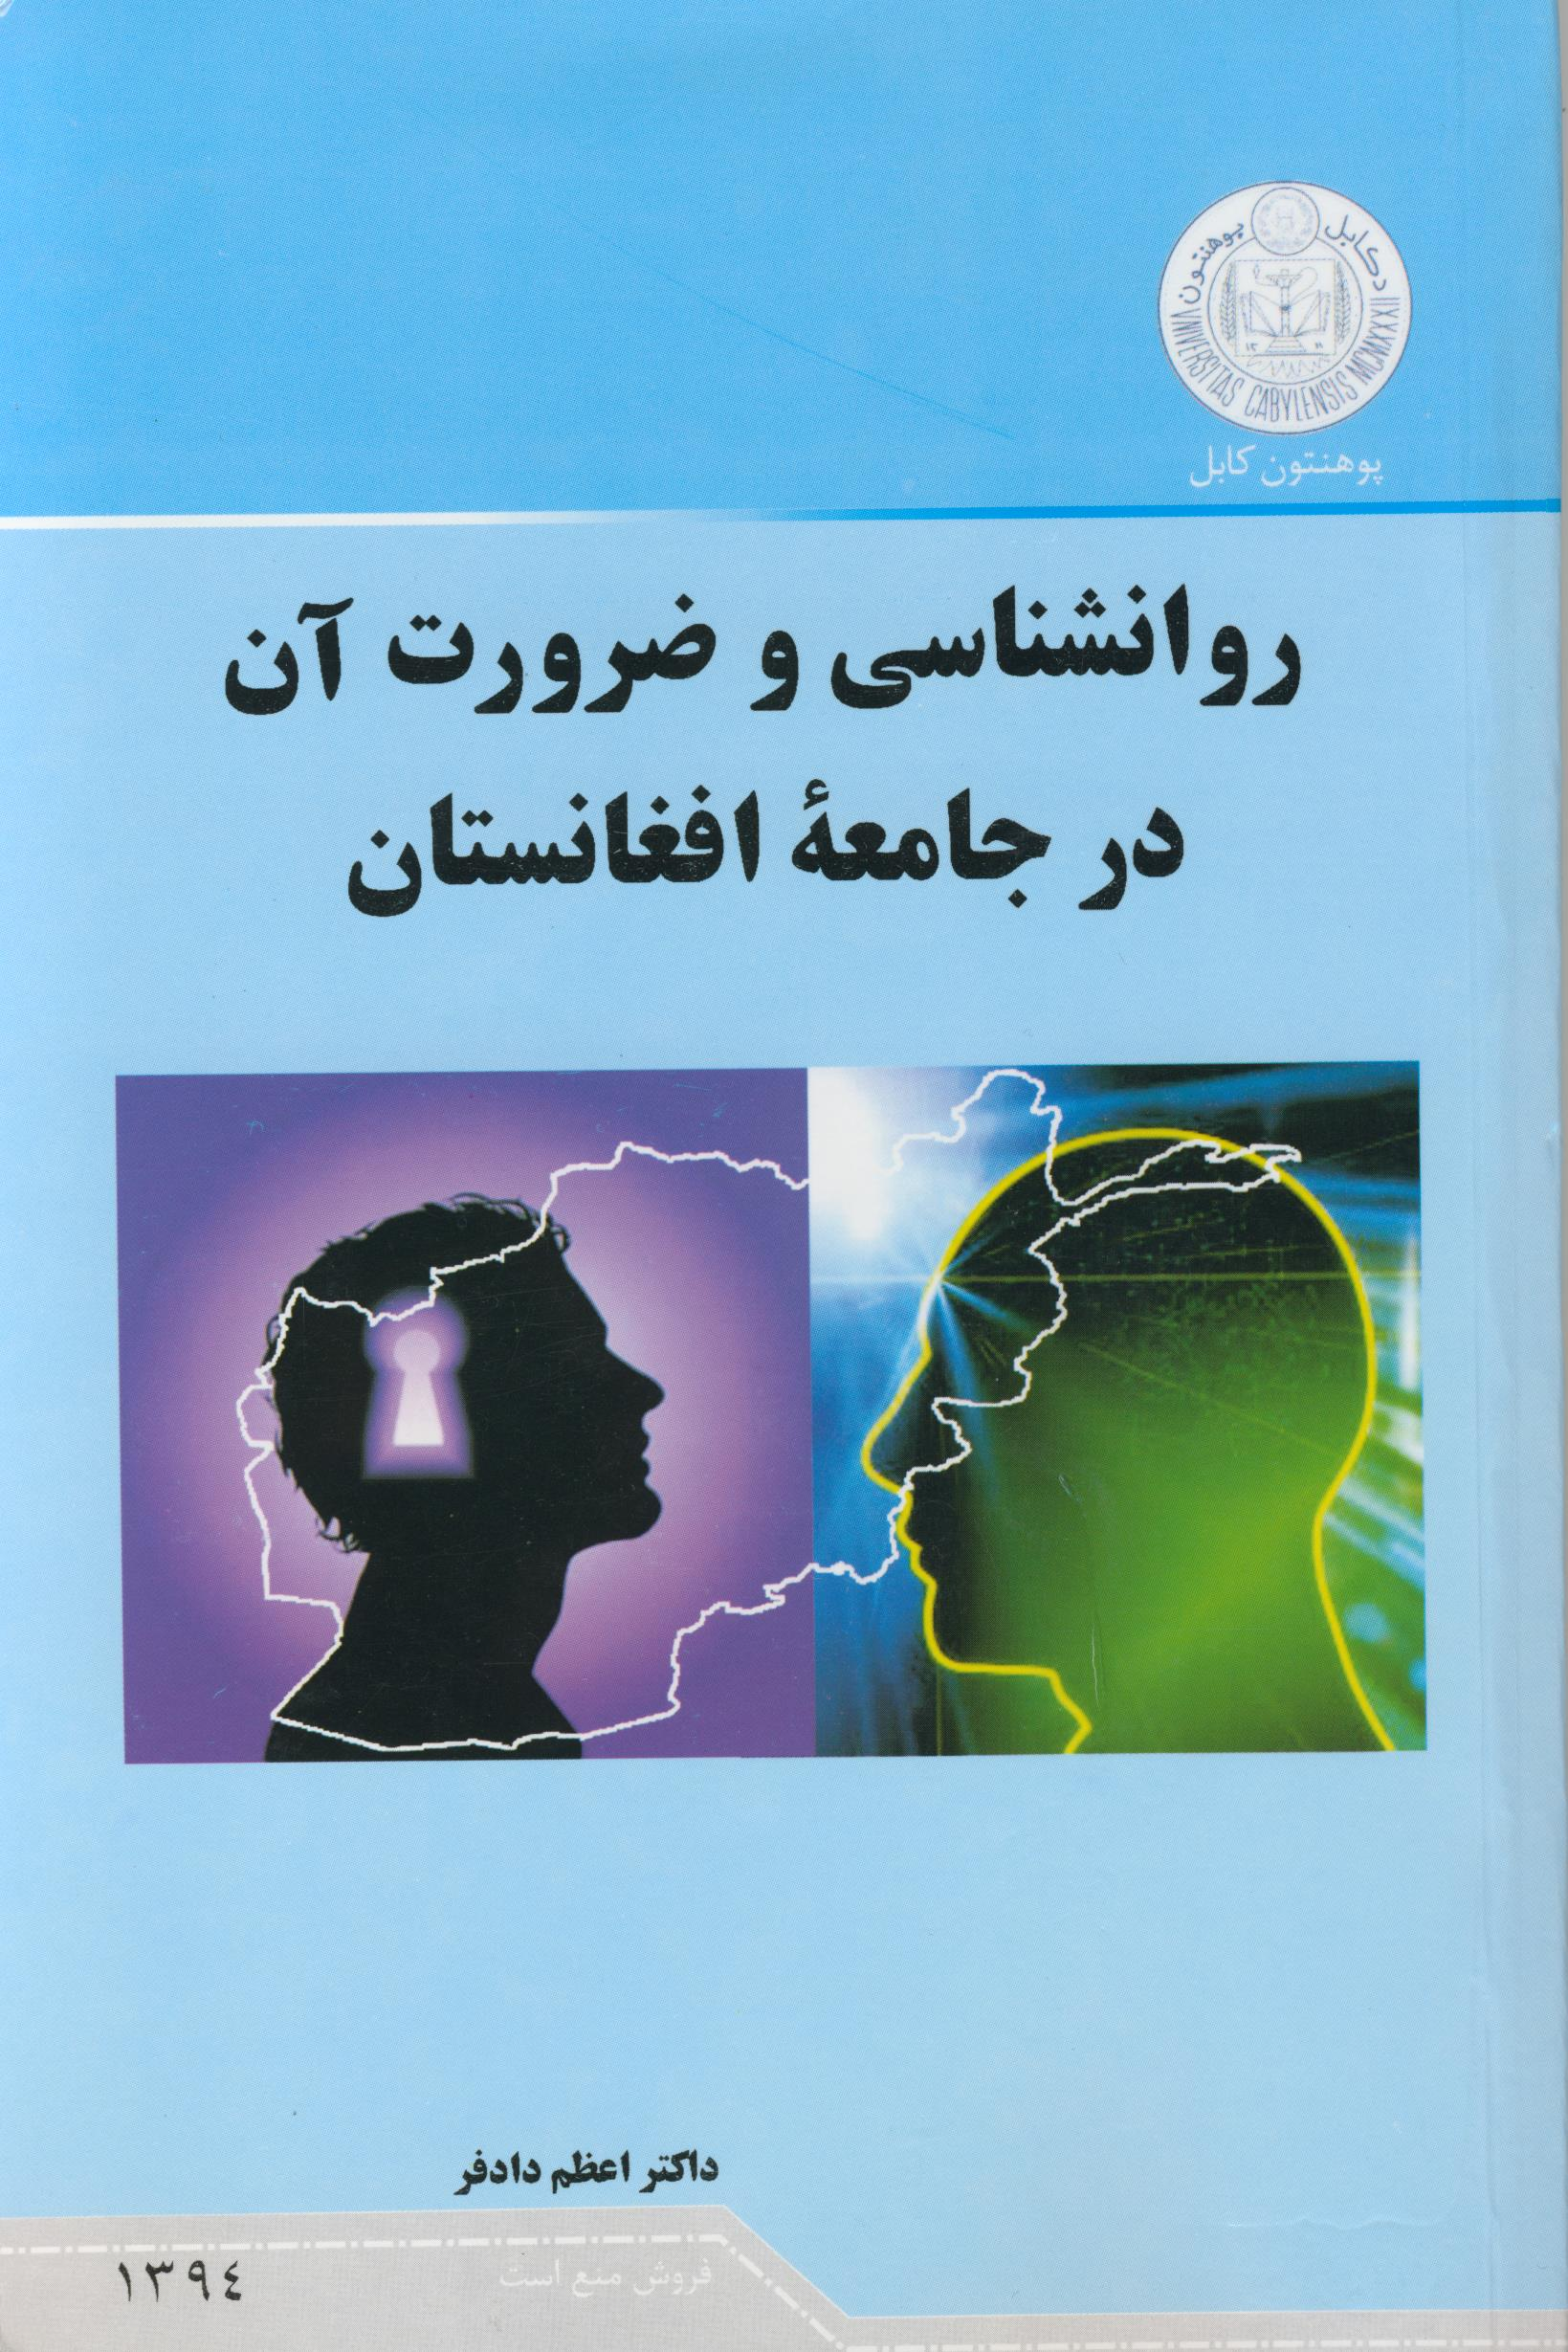 psychology its need in afg society cover